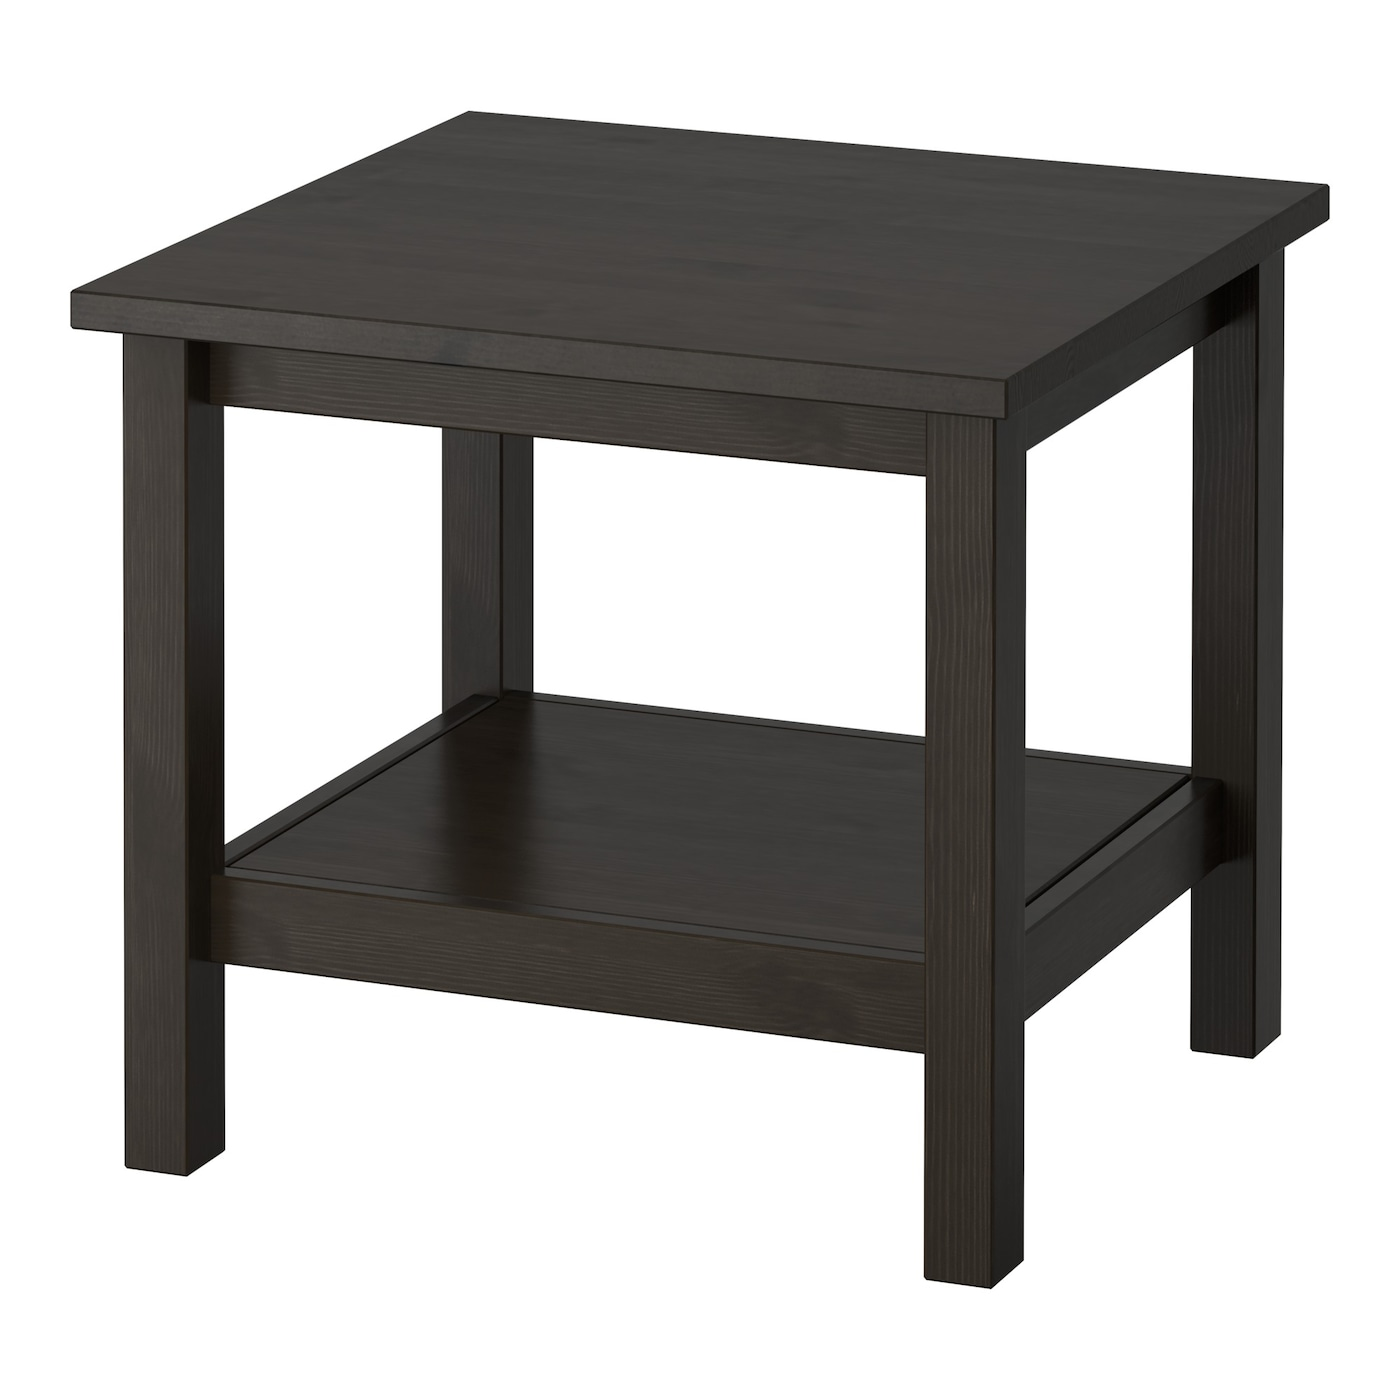 Hemnes side table black brown 55x55 cm ikea for Black wood coffee table and end tables